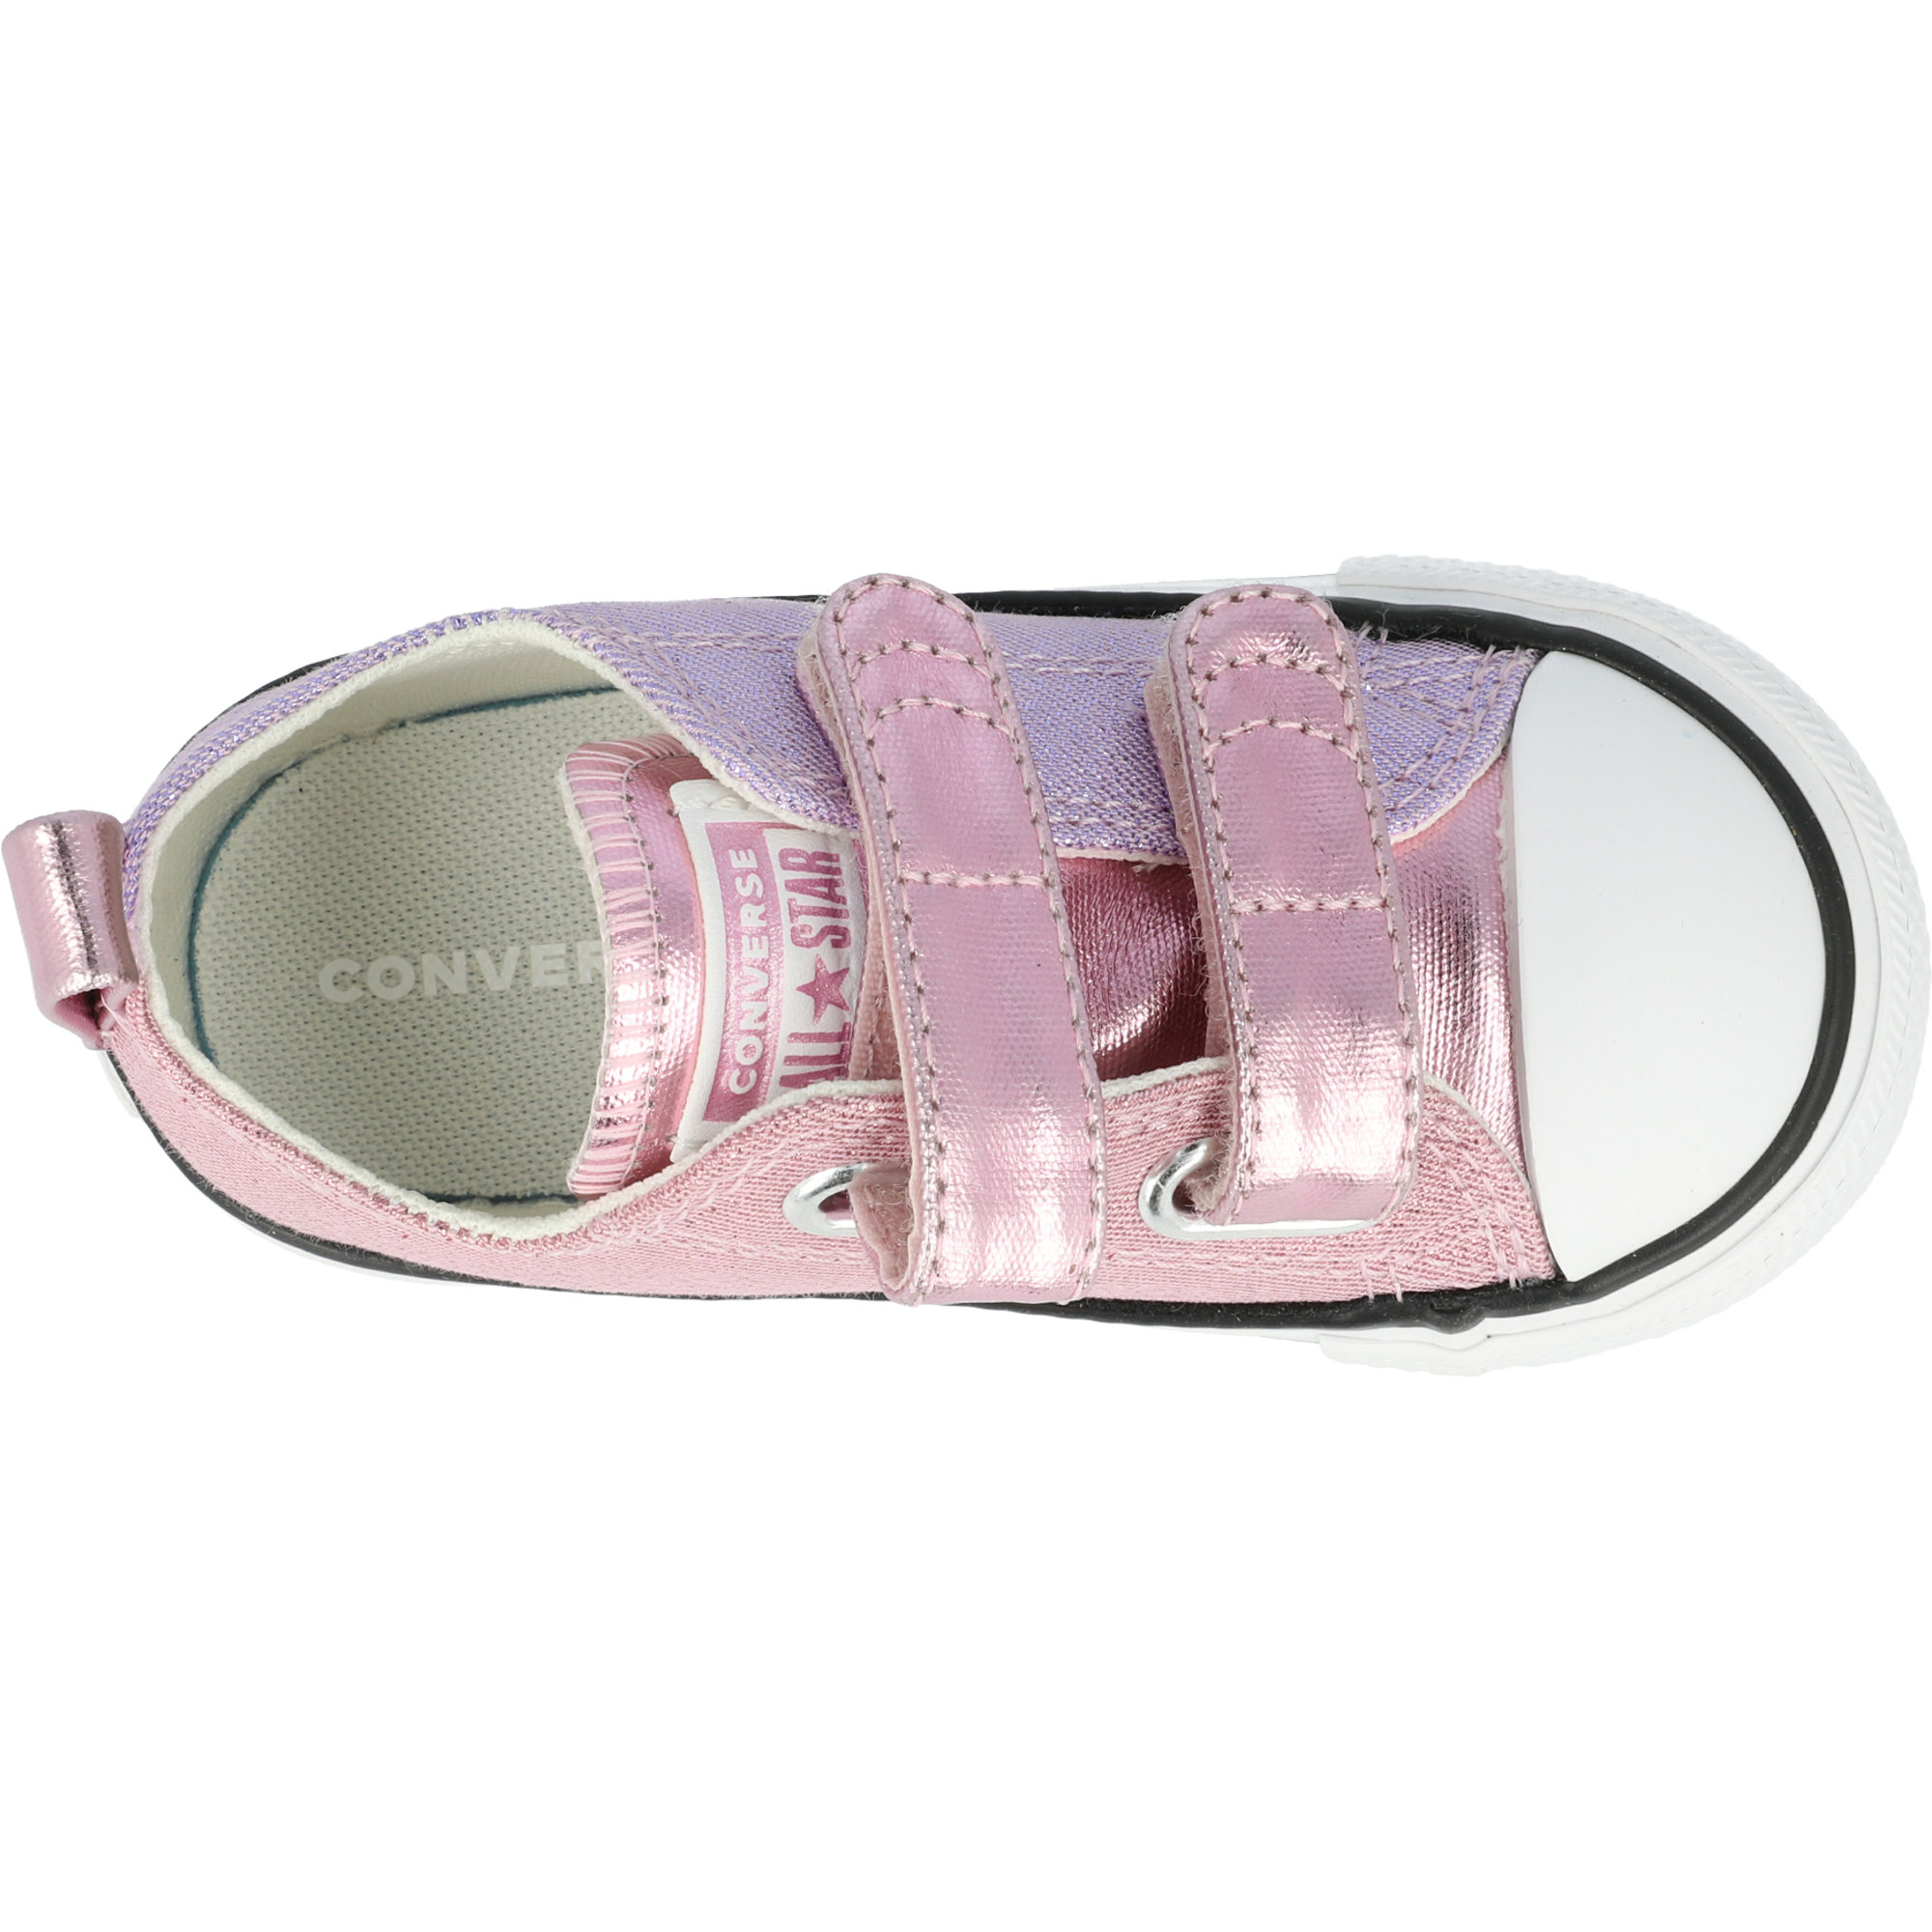 Converse Chuck Taylor All Star 2V Metallic Ox Cherry Blossom/Washed Lilac Canvas Infant